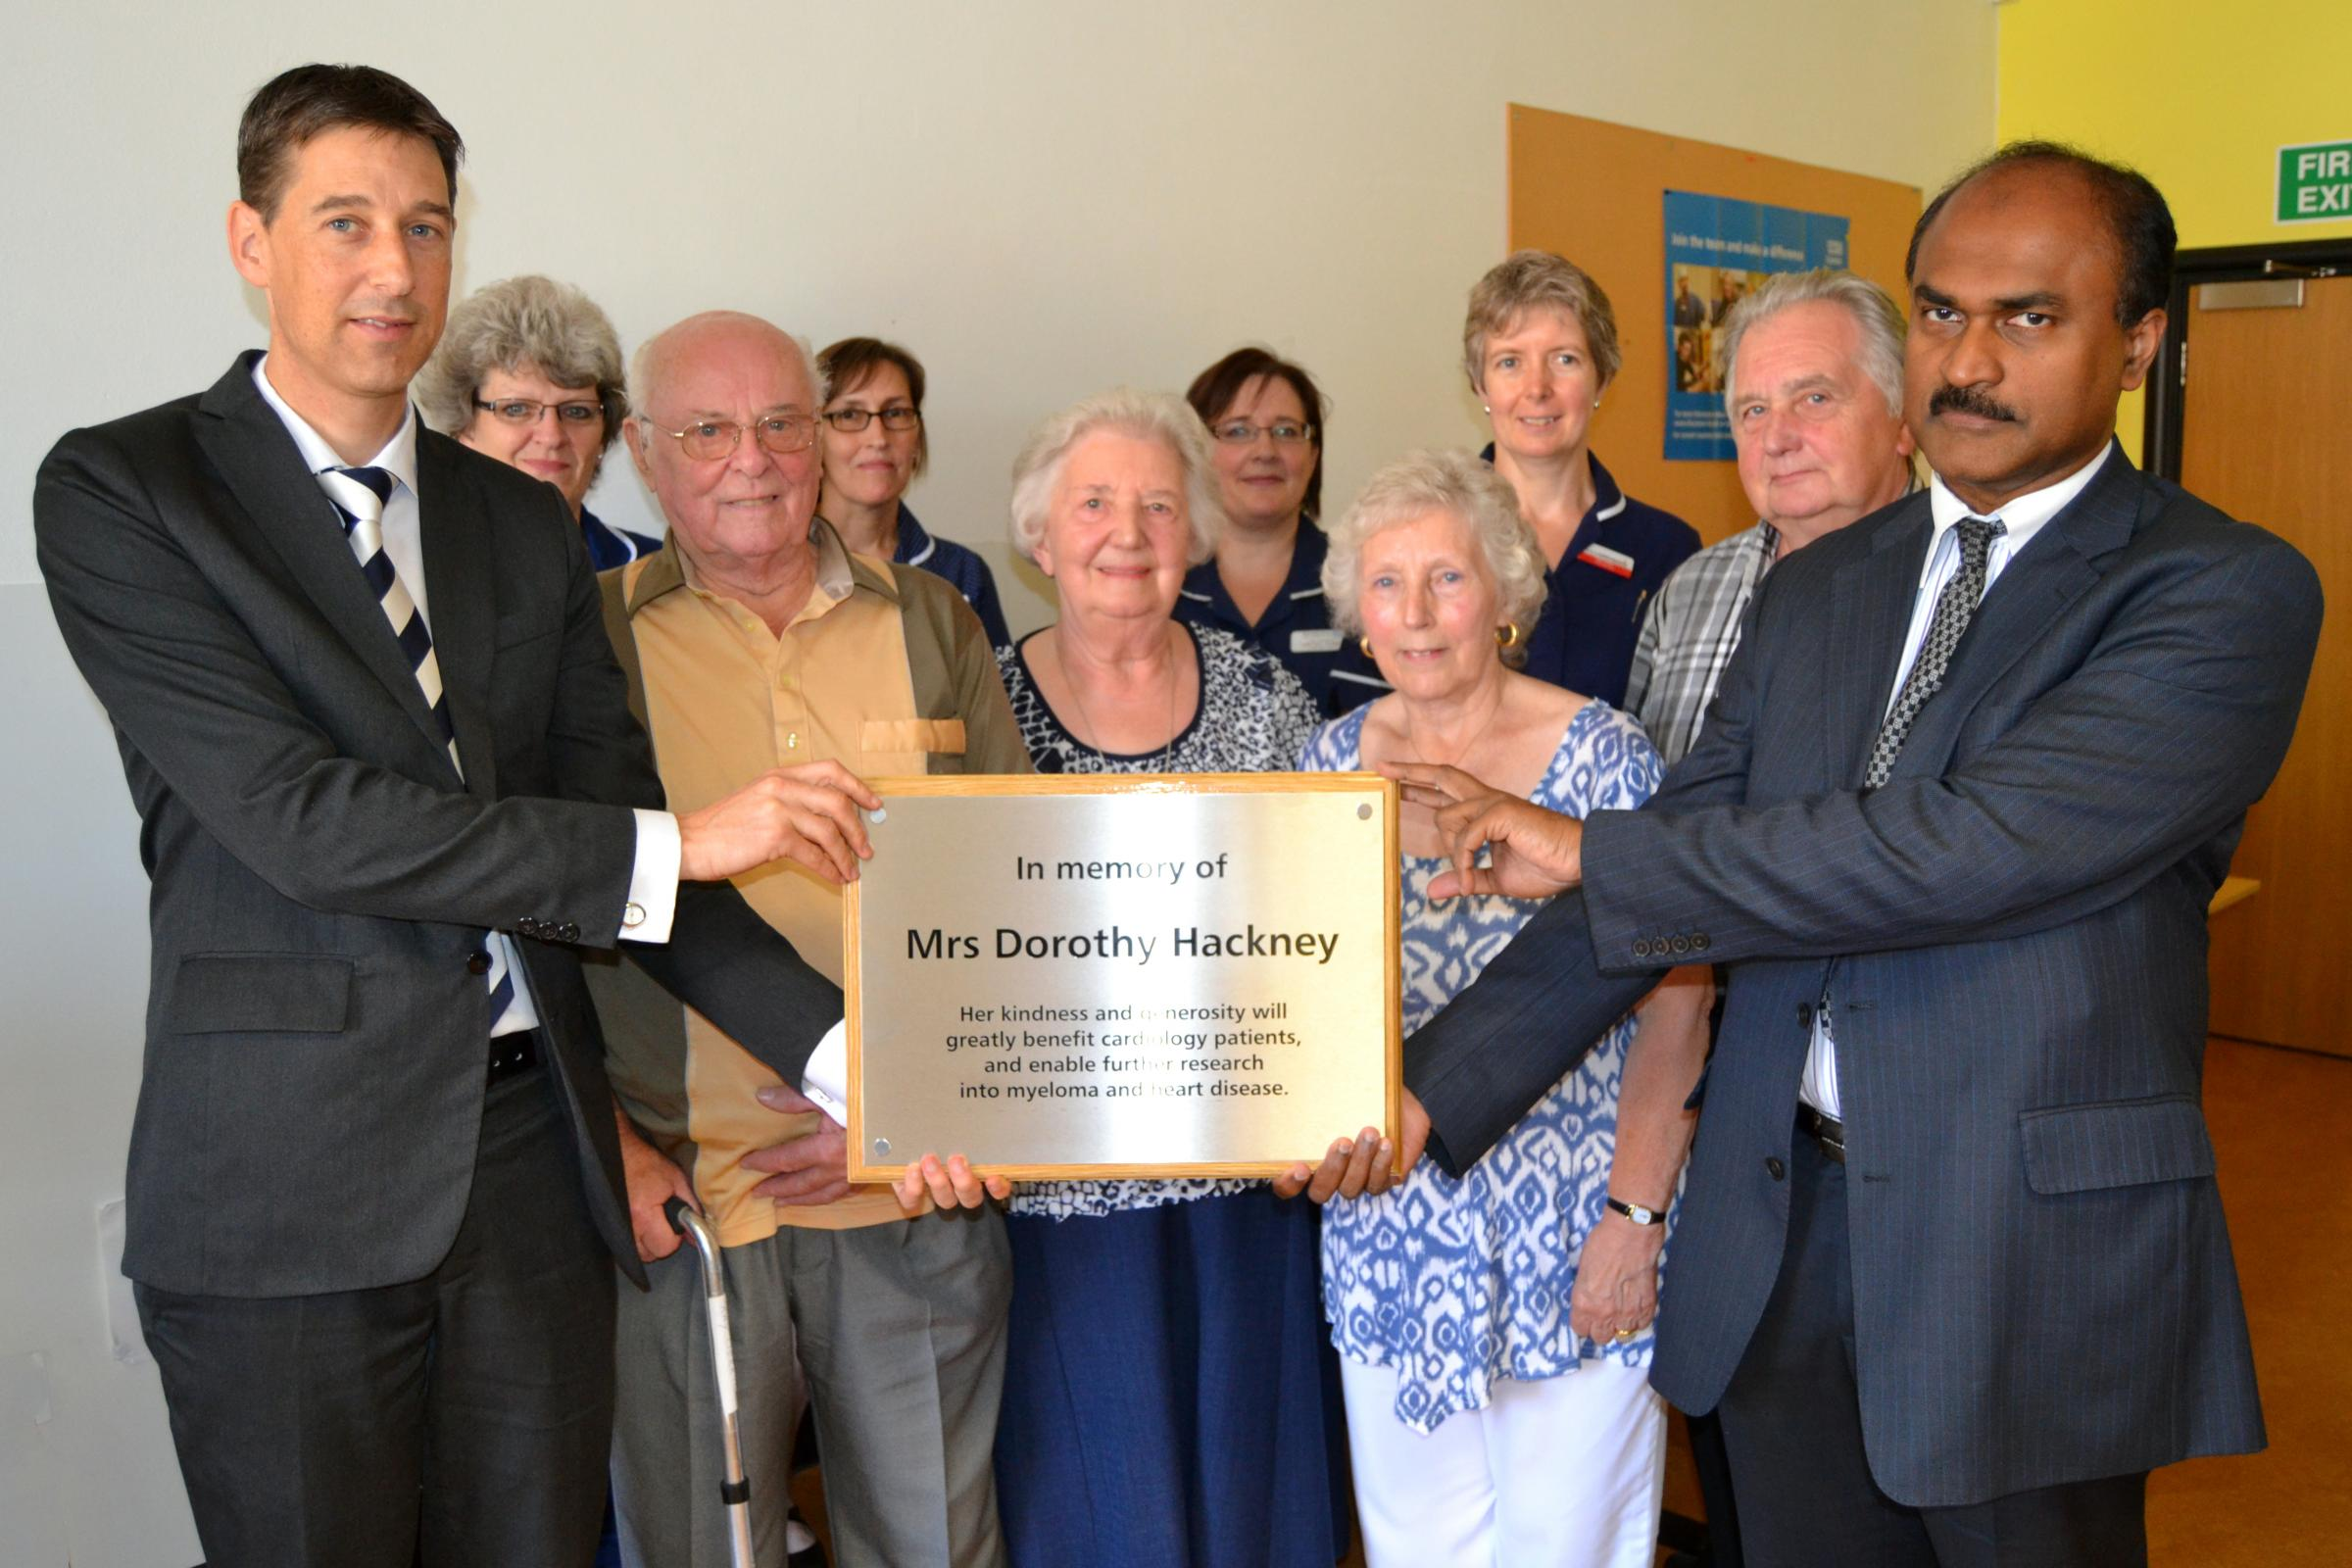 Dr Jasper Trevelyan and Dr Salim Shafeek with Mrs Hackney's friends and executors Ray and Pat Merrick and her cousin Do